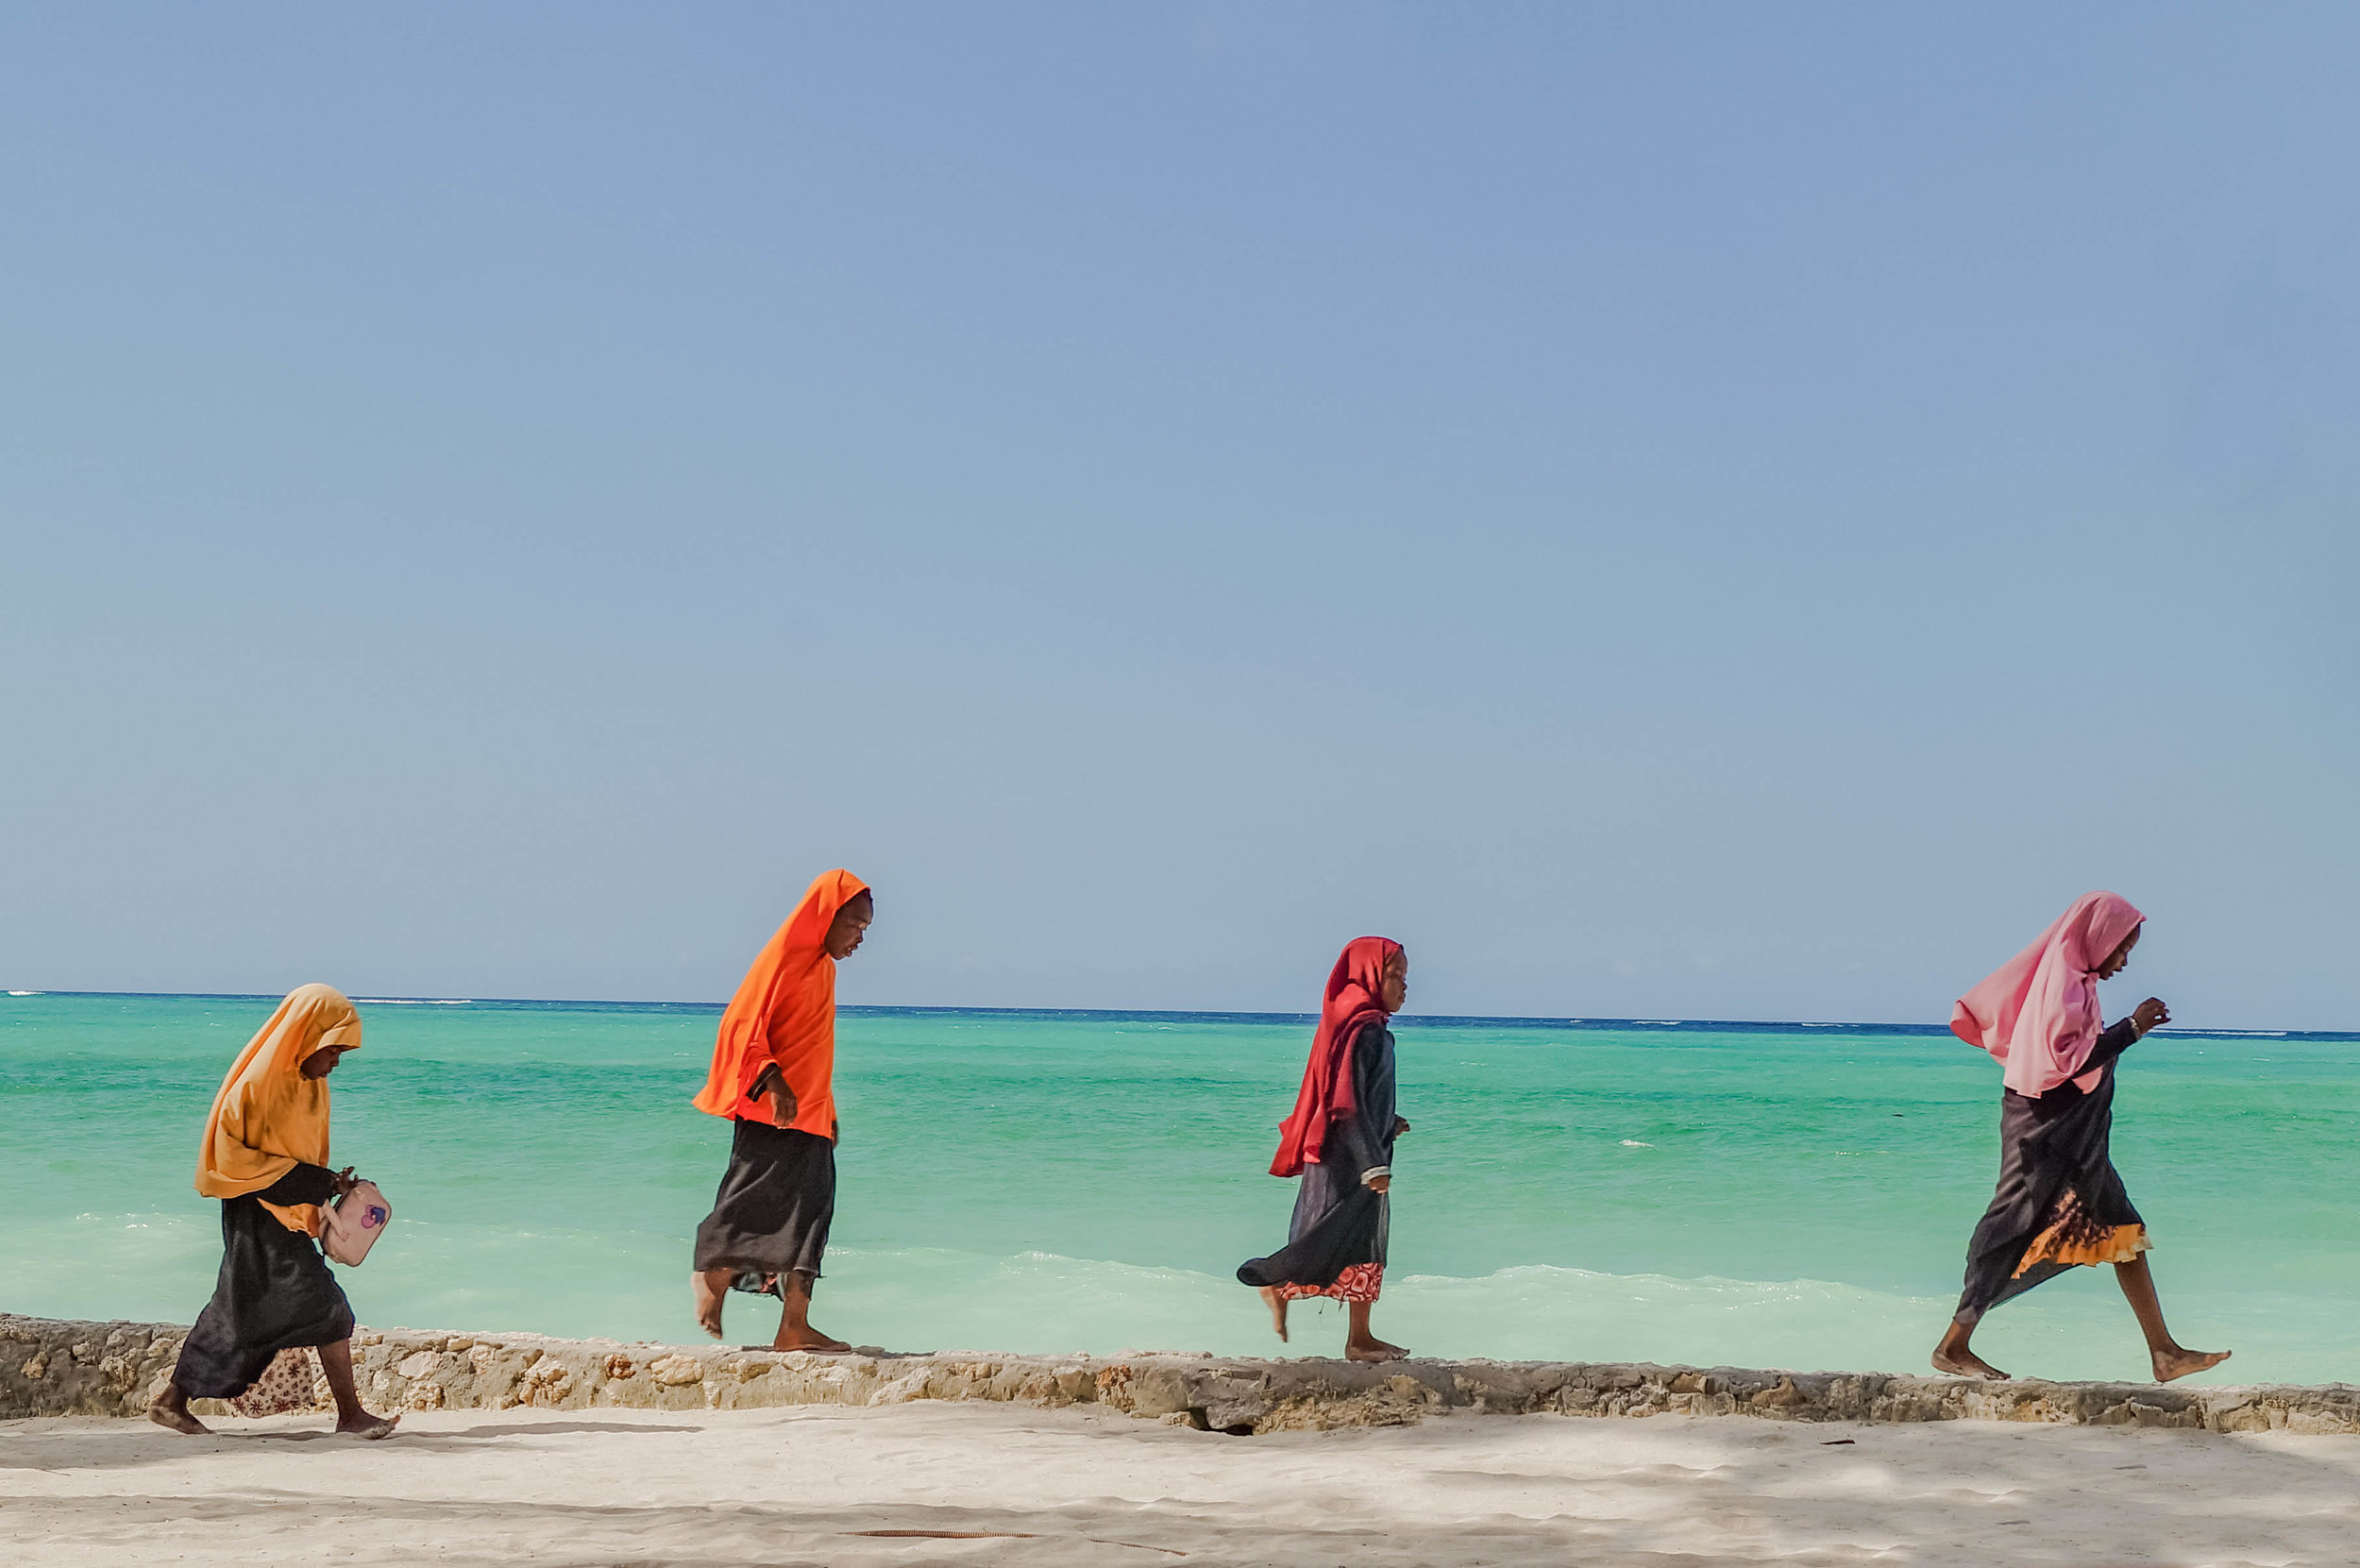 Young girls dressed in colourful hijabs make their way home from school along the beach front rock walls.